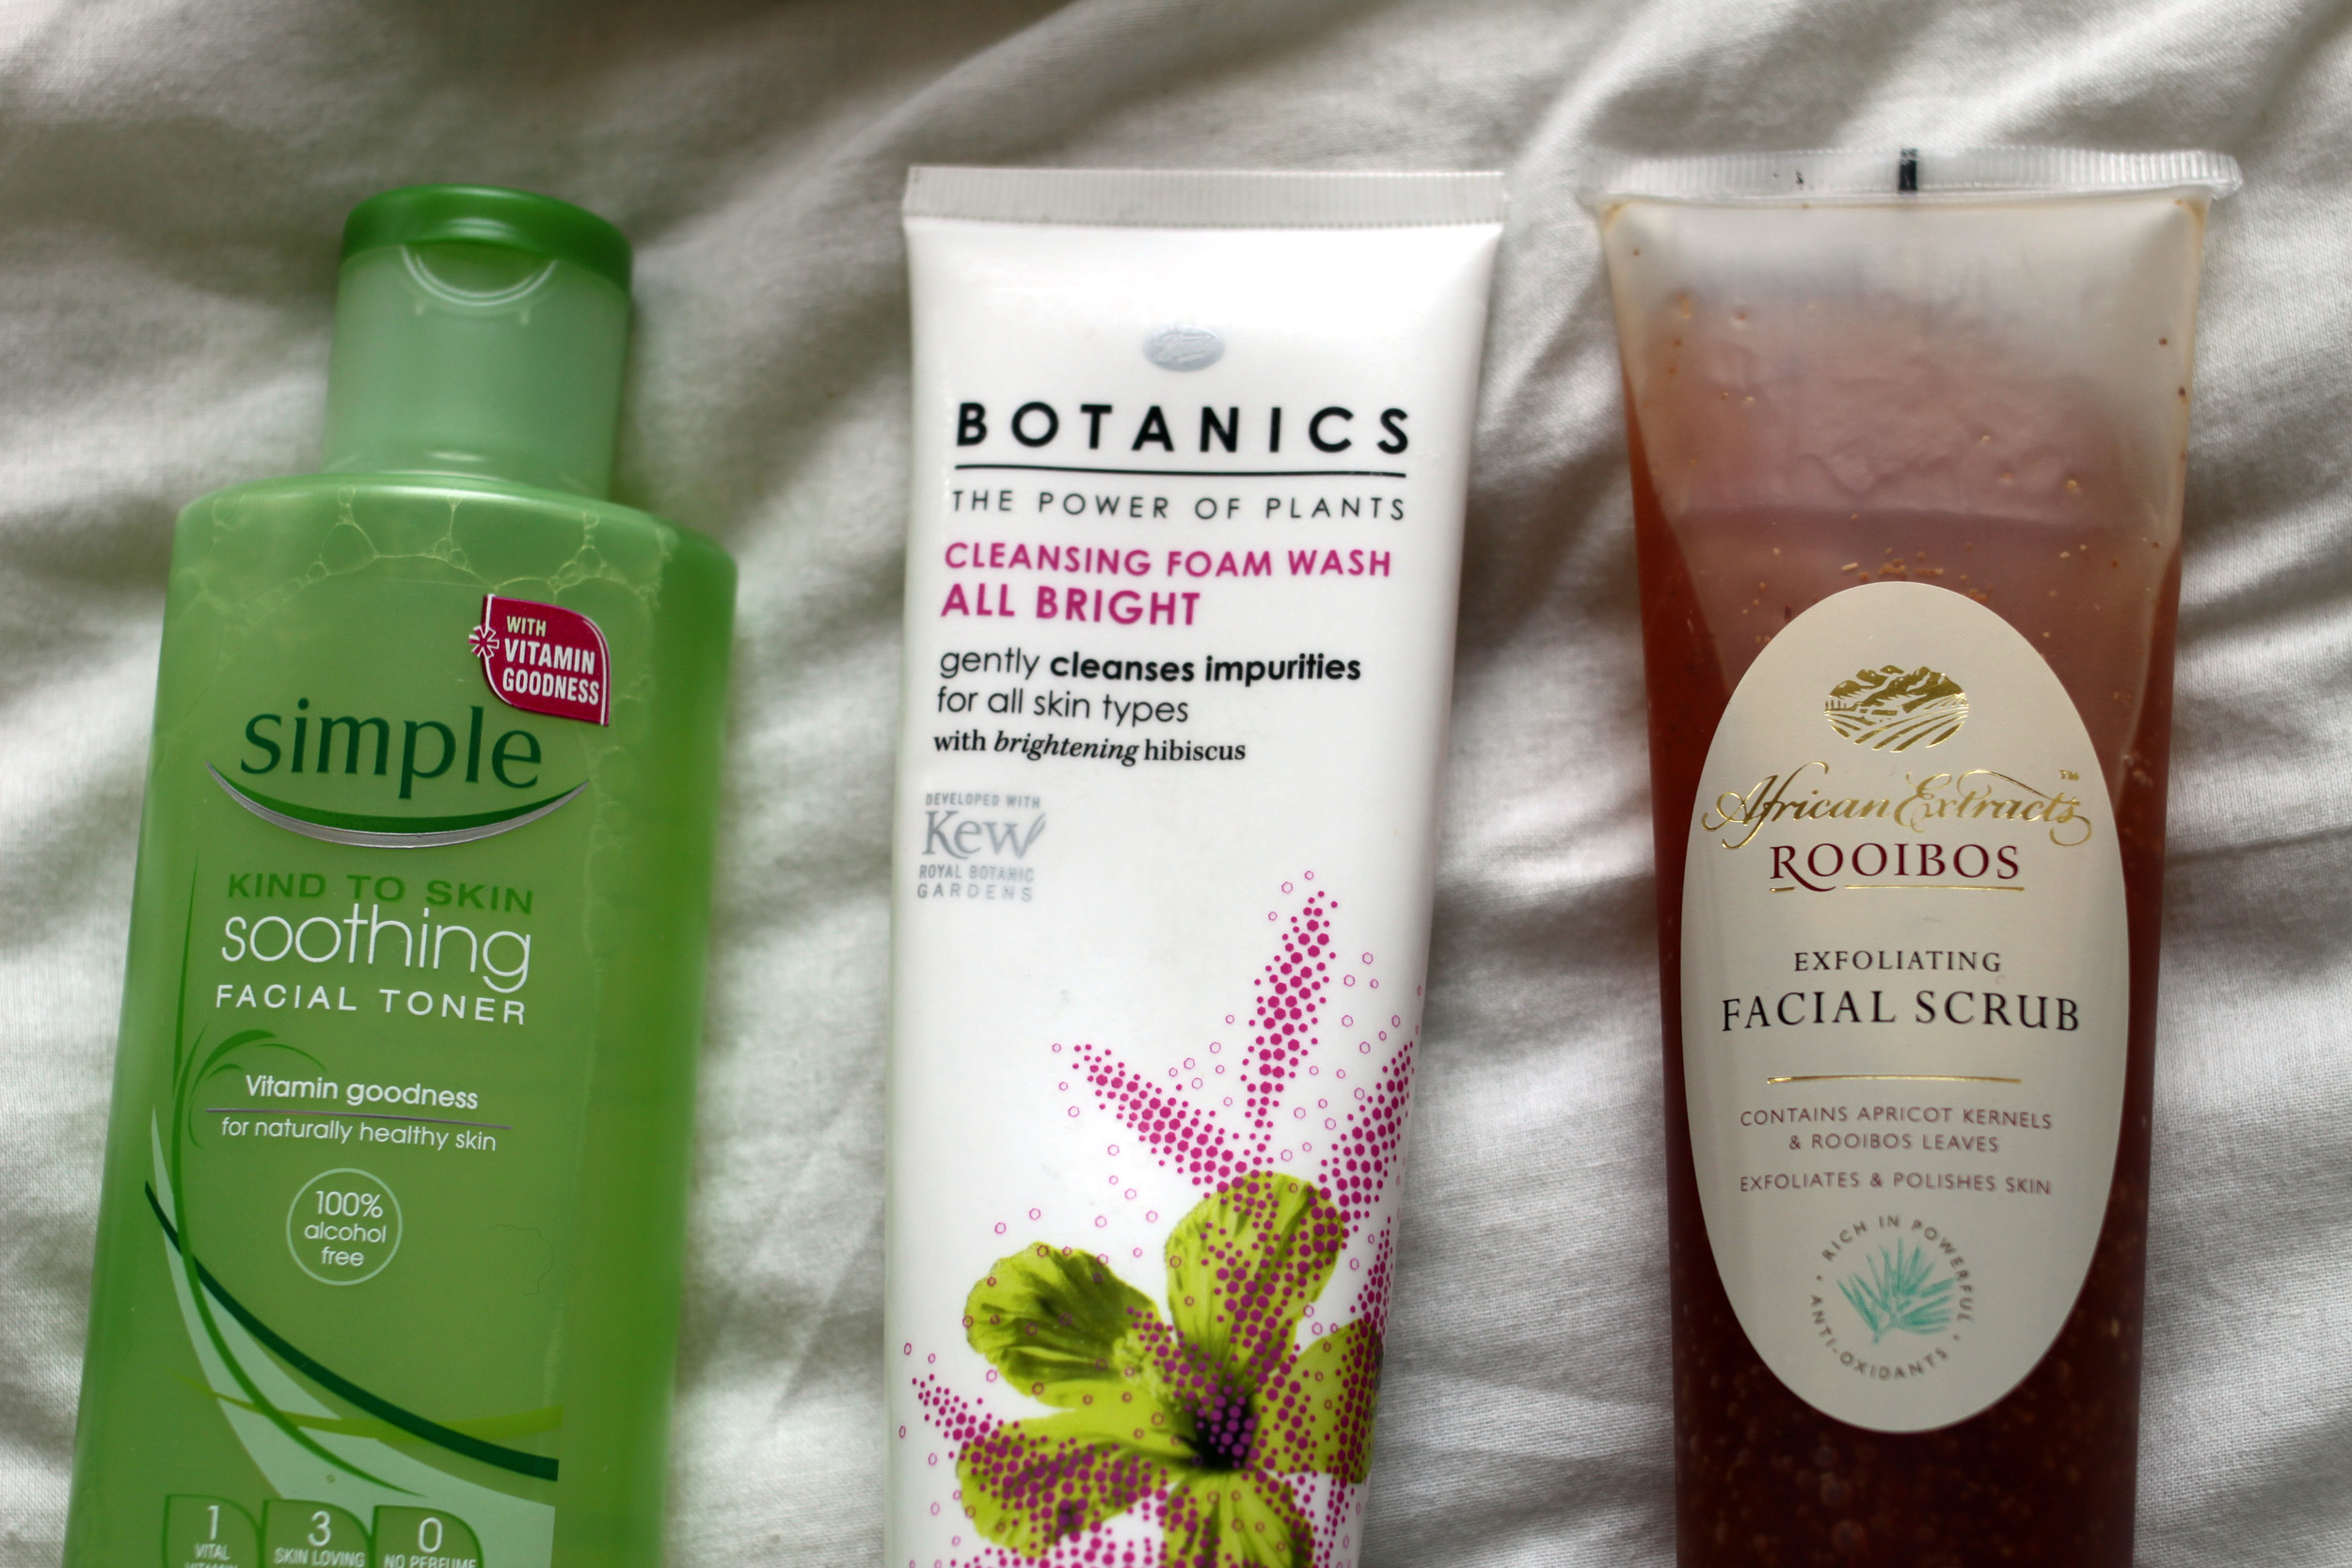 Simple Soothing Facial Toner / Boots Botanics Brightening Facial Cleaners / African Extract Rooibos Facial Scrub / Second Floor Flat